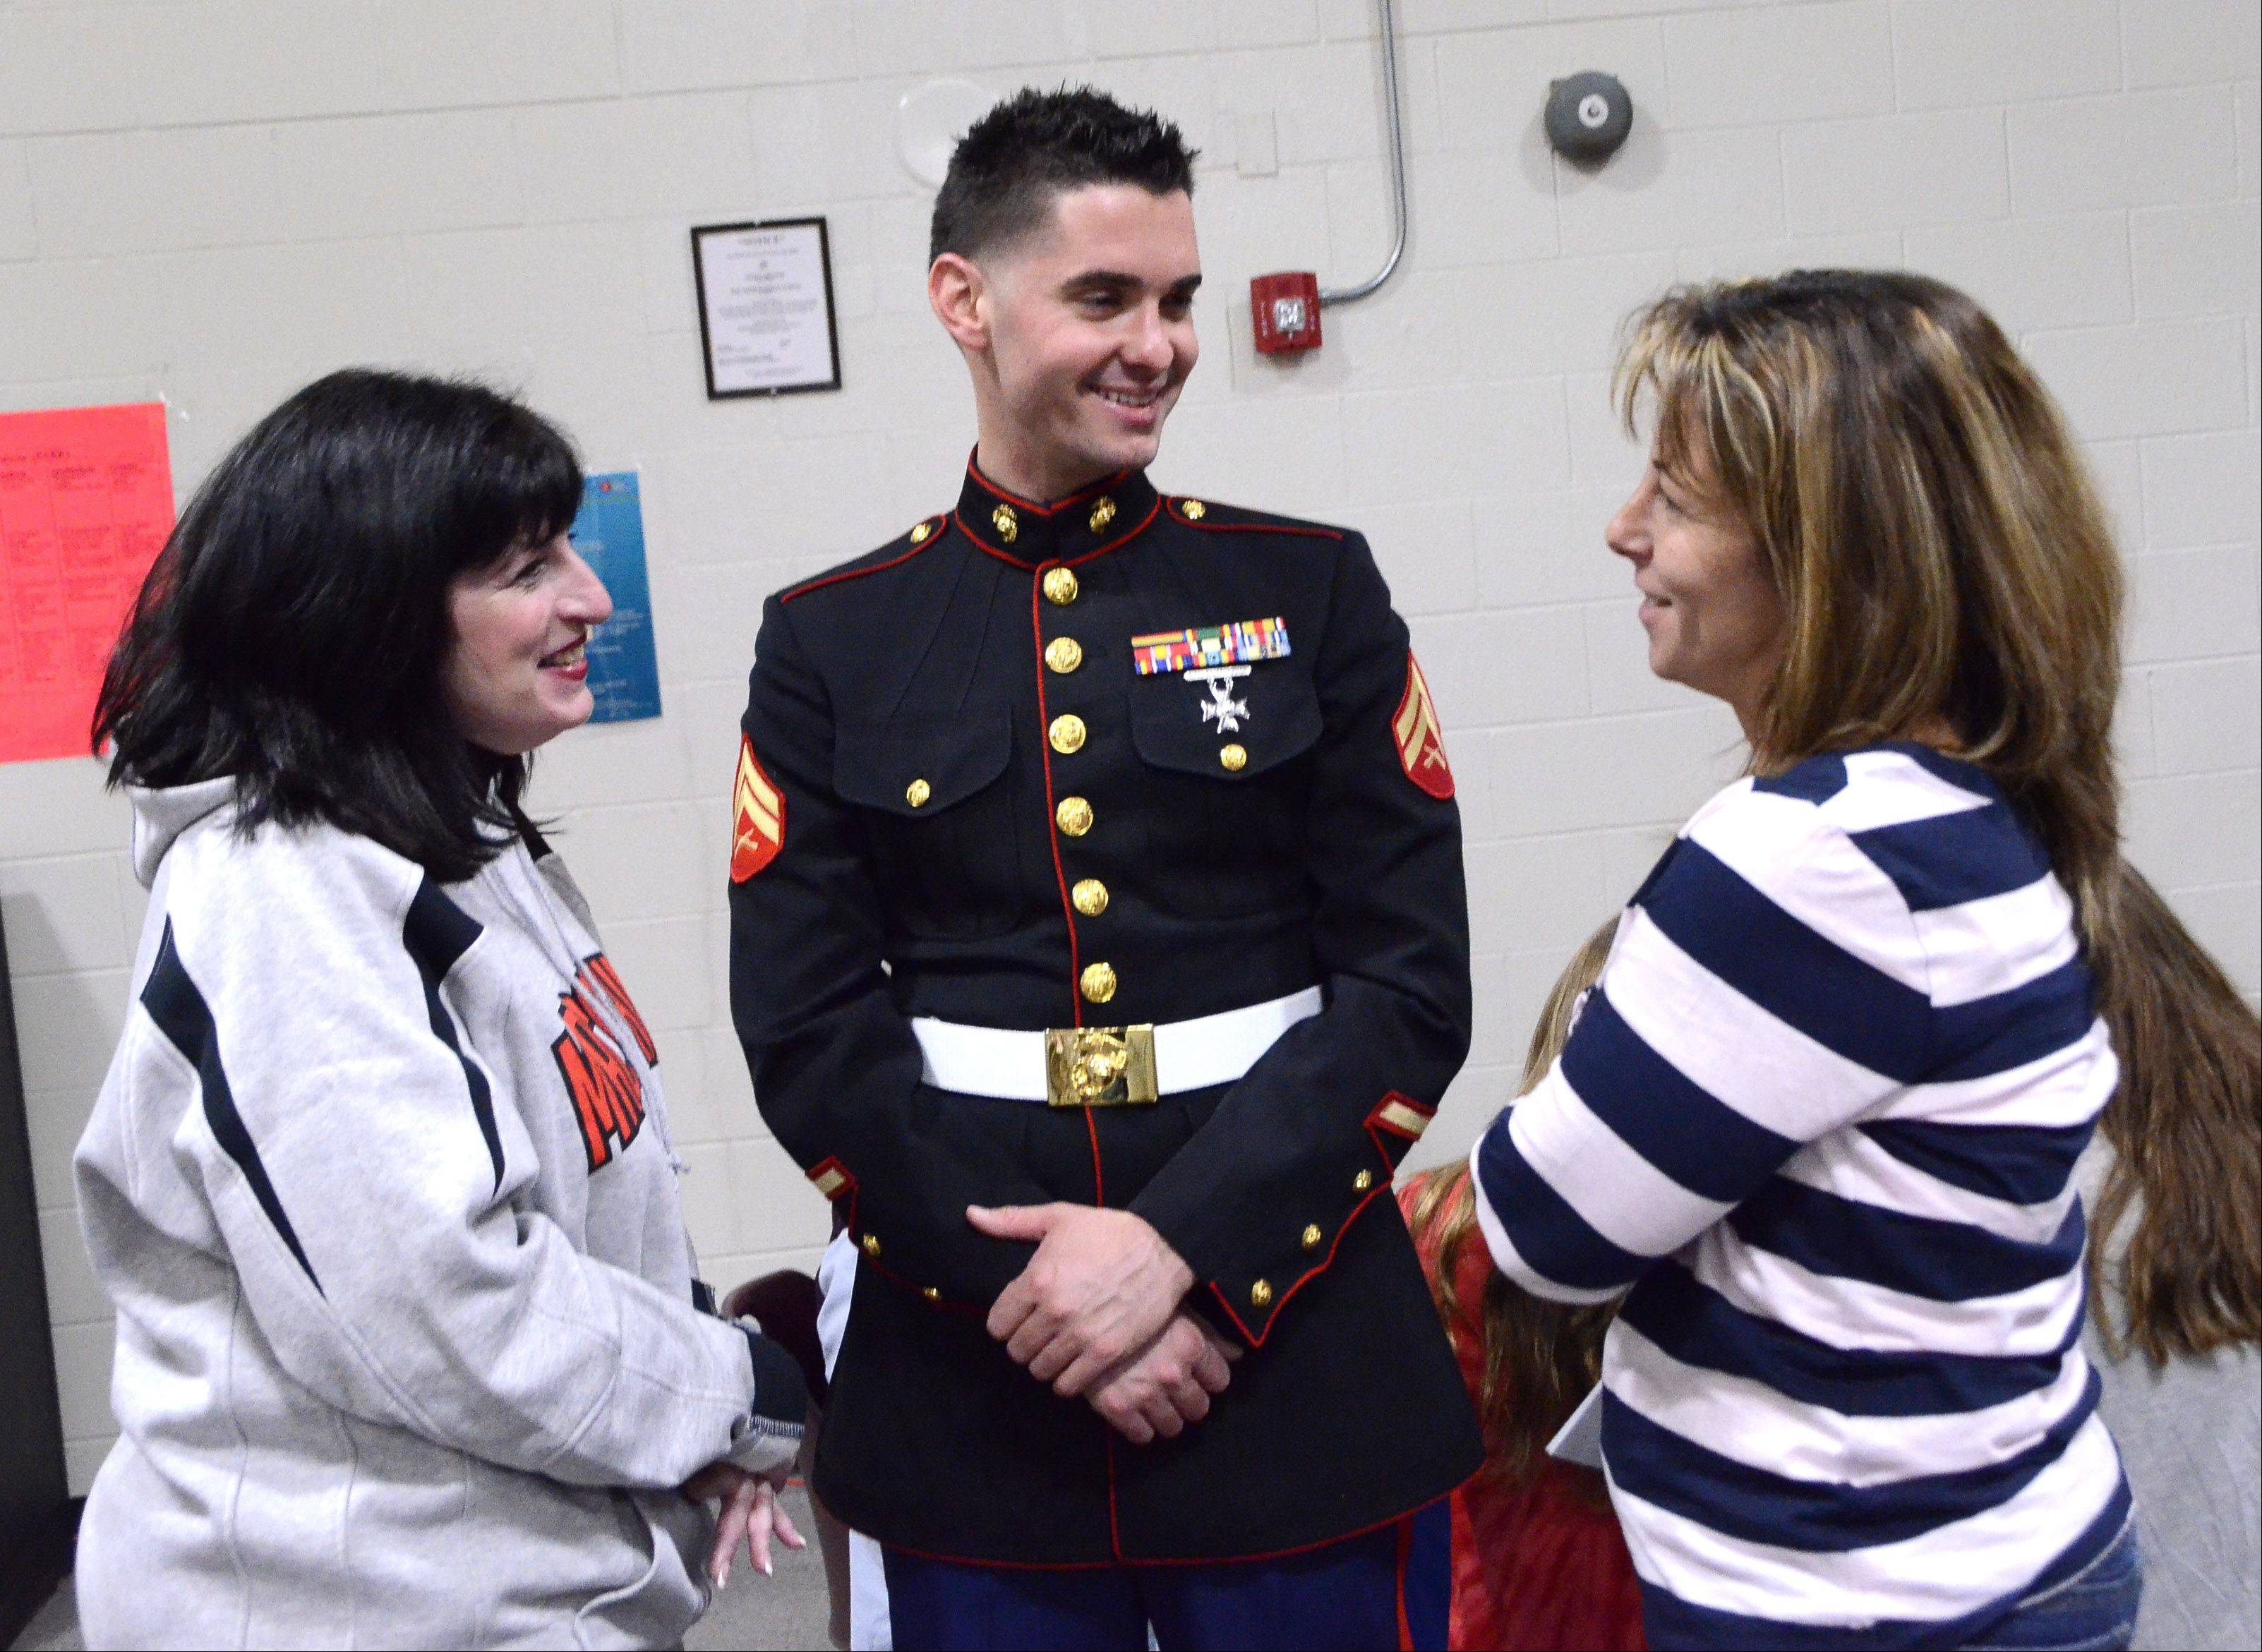 USMC Corporal Patrick Hood of Chicago visits with his former teachers Jodi Hernandez, left, and Athena Lalaras at the Veterans Day breakfast and assembly Friday at MacArthur Middle School in Prospect Heights.